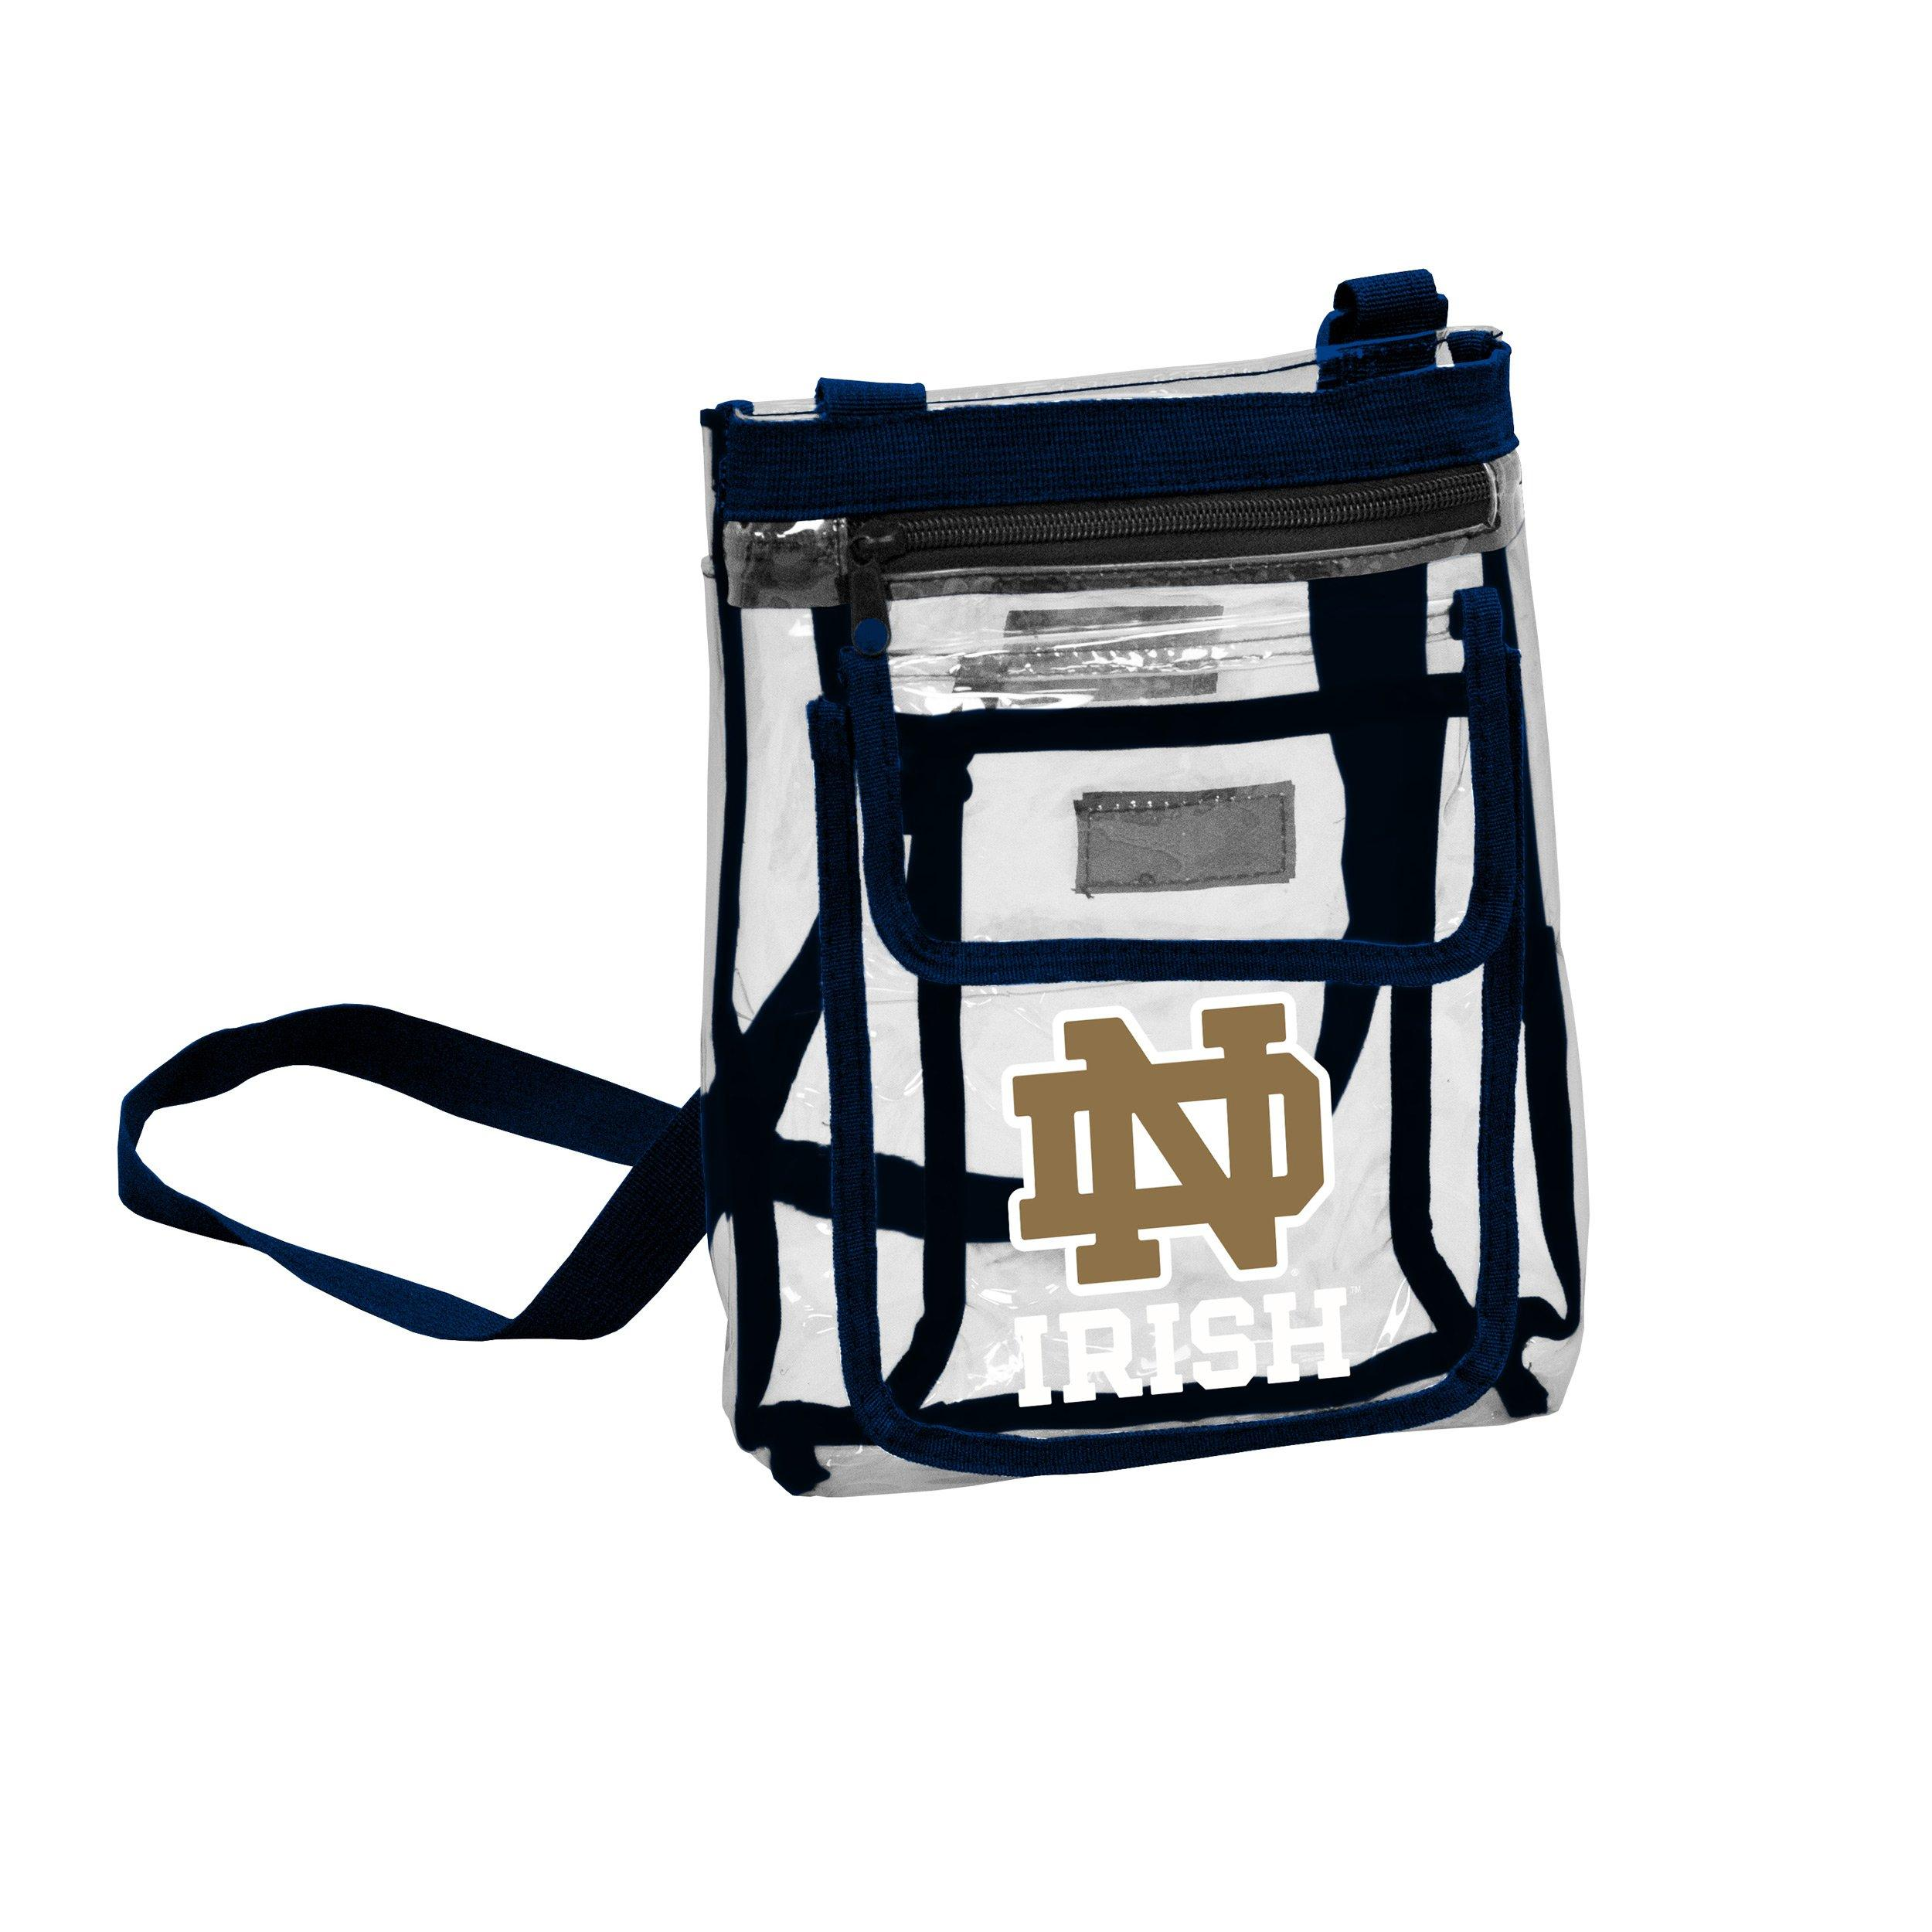 notre dame chair ergonomic drawing logo company fighting irish gameday crossbody bag main container image 1